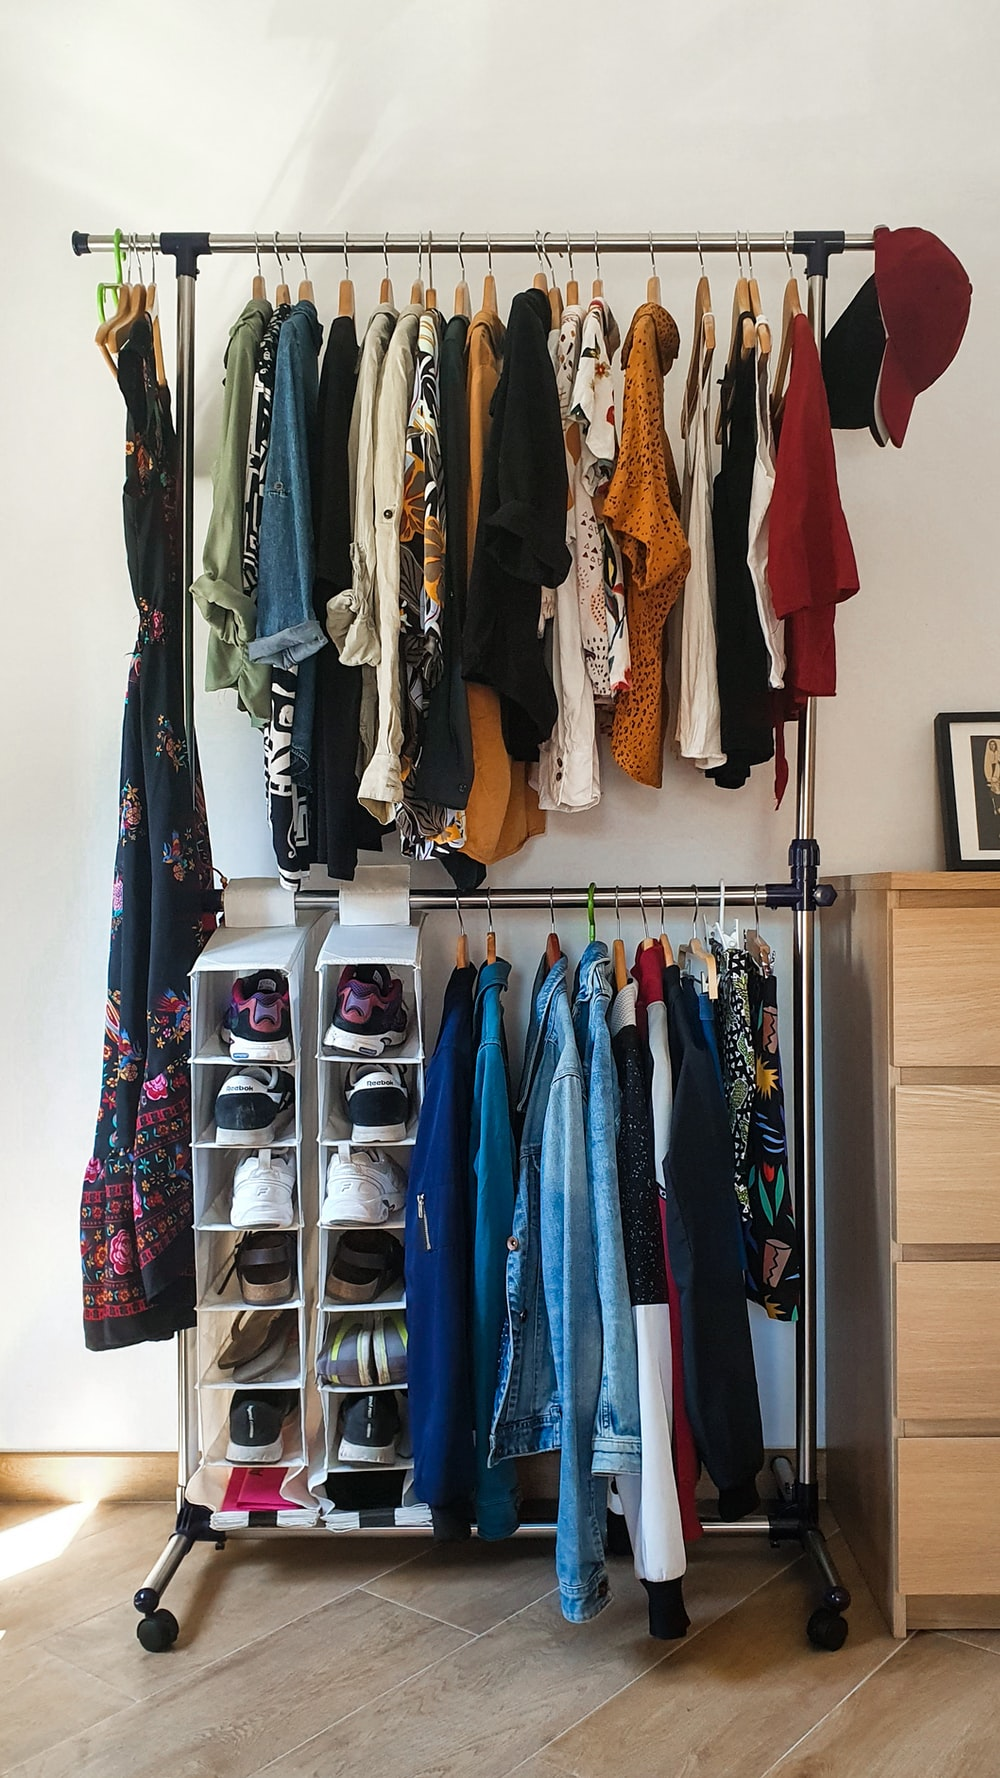 clothes hanged on brown wooden cabinet